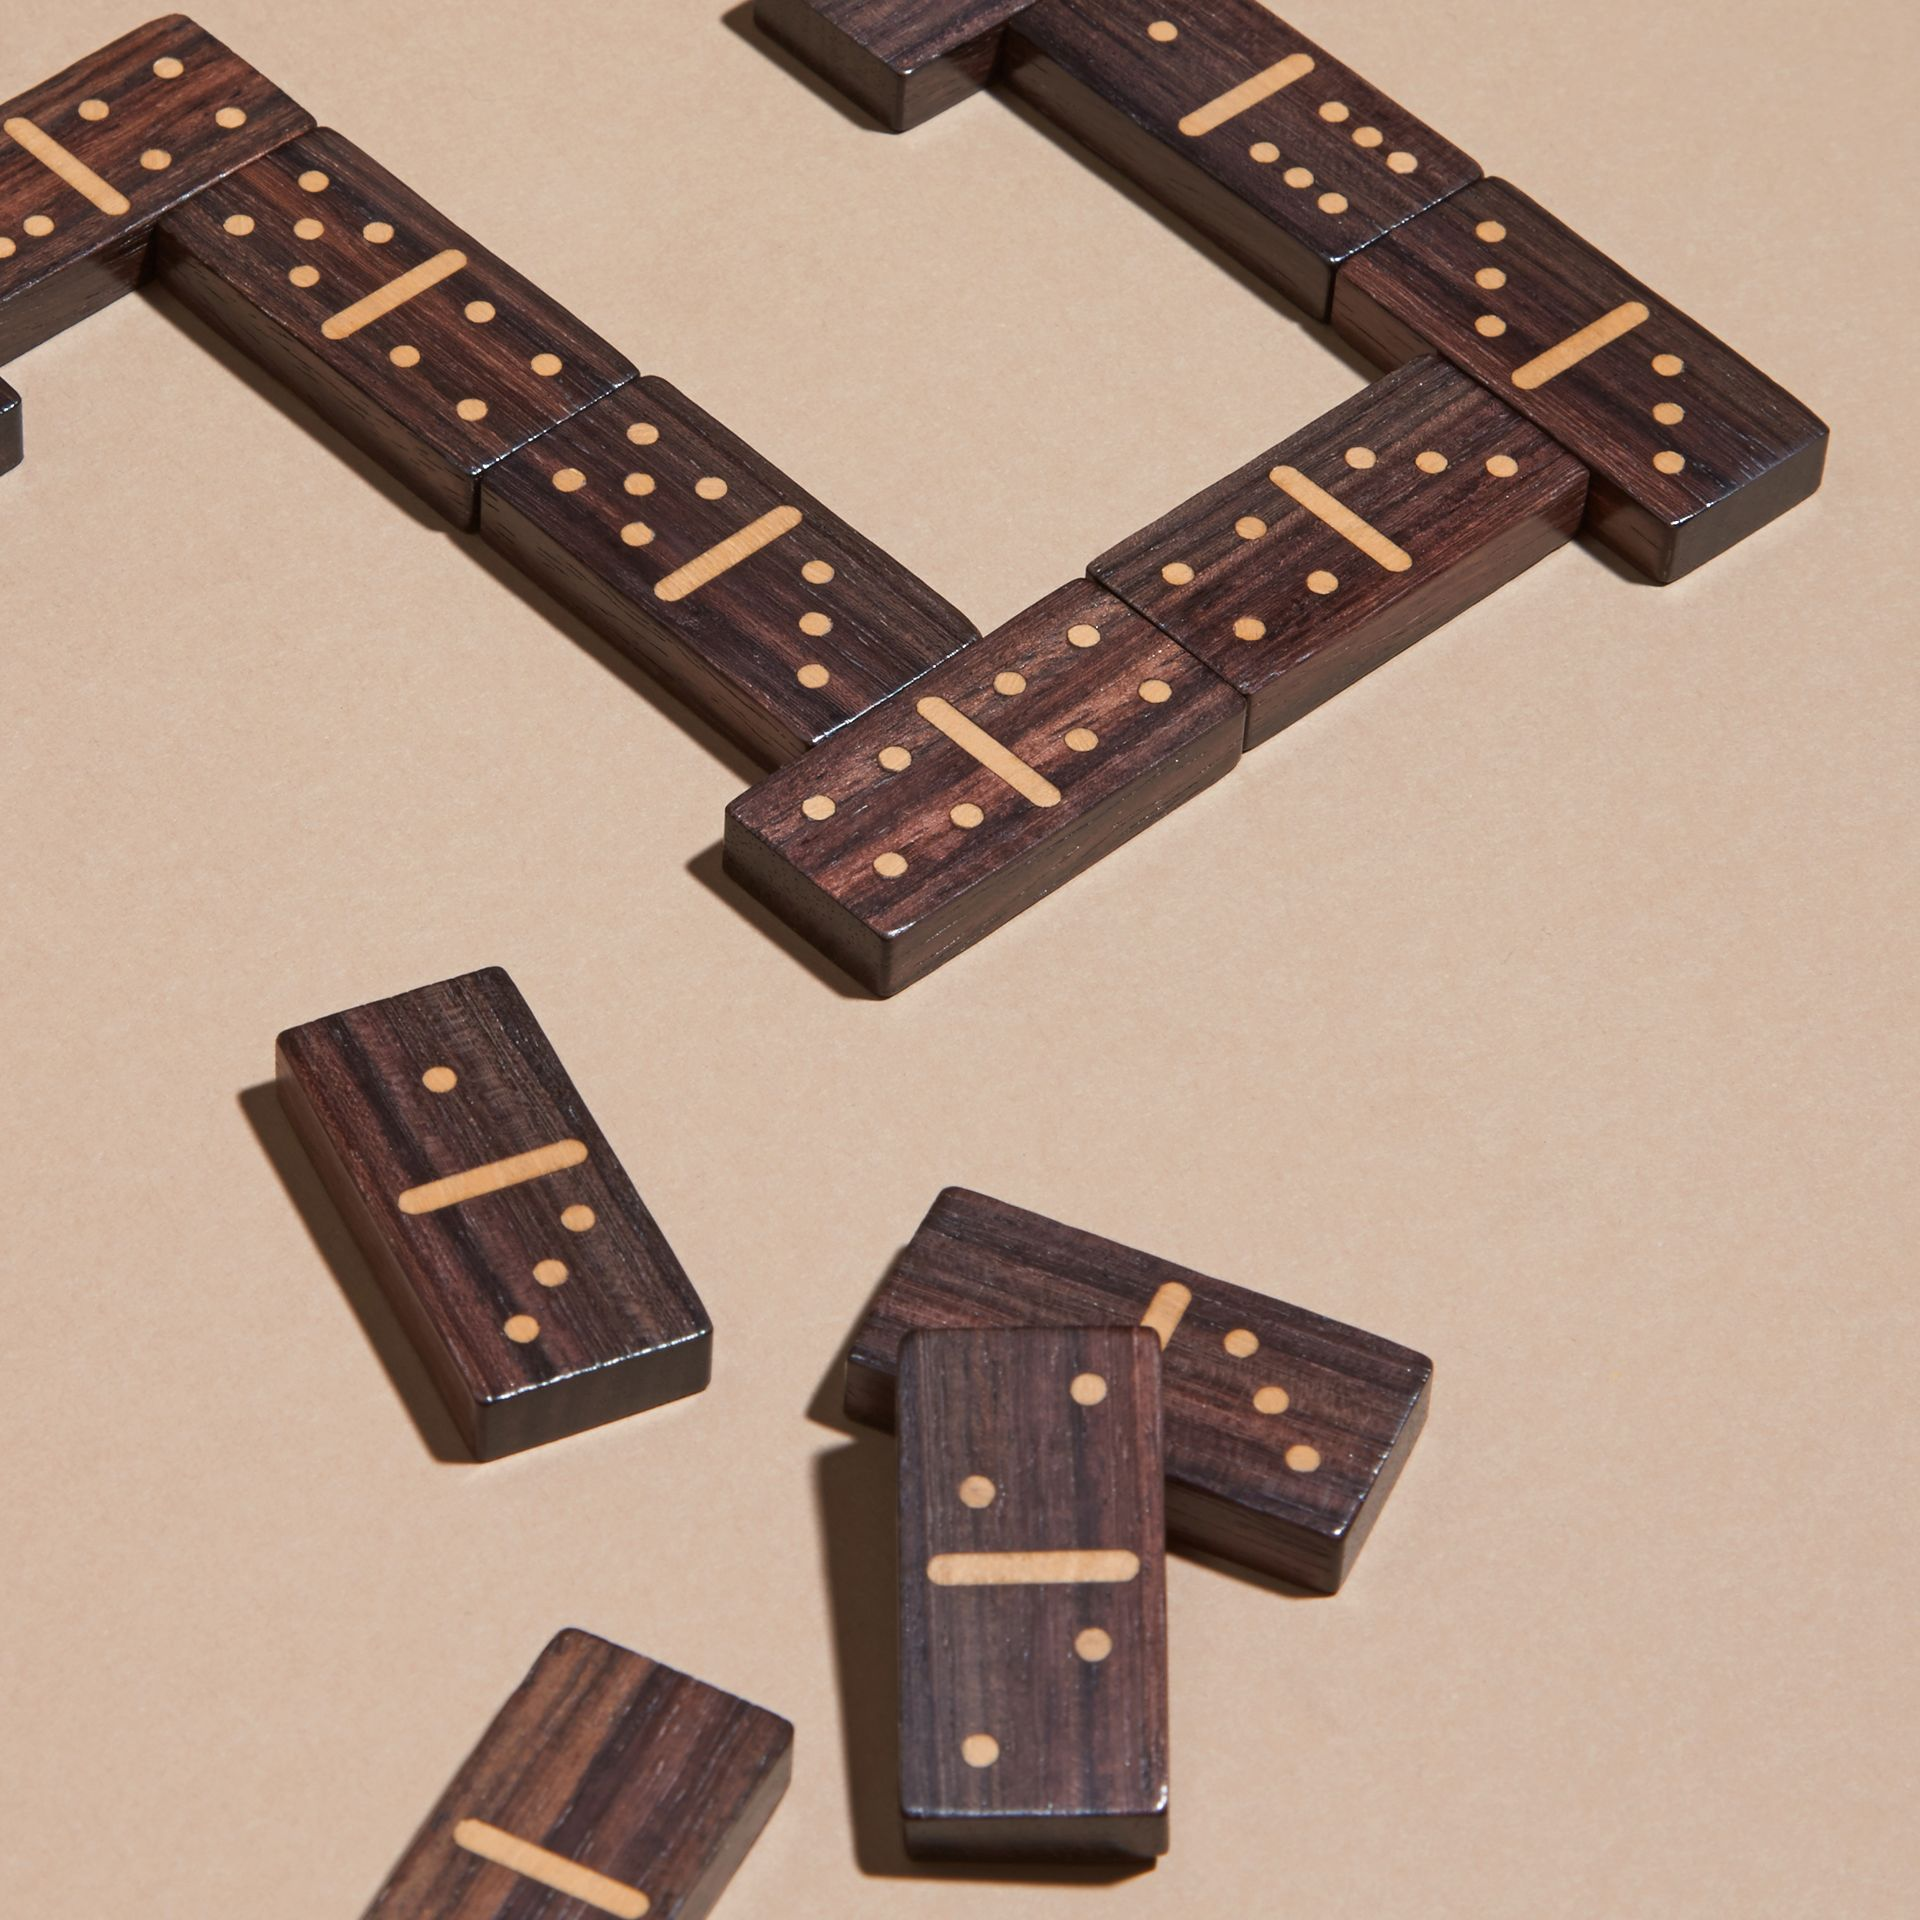 Wooden Domino Set with Grainy Leather Case Dark Forest Green - gallery image 2